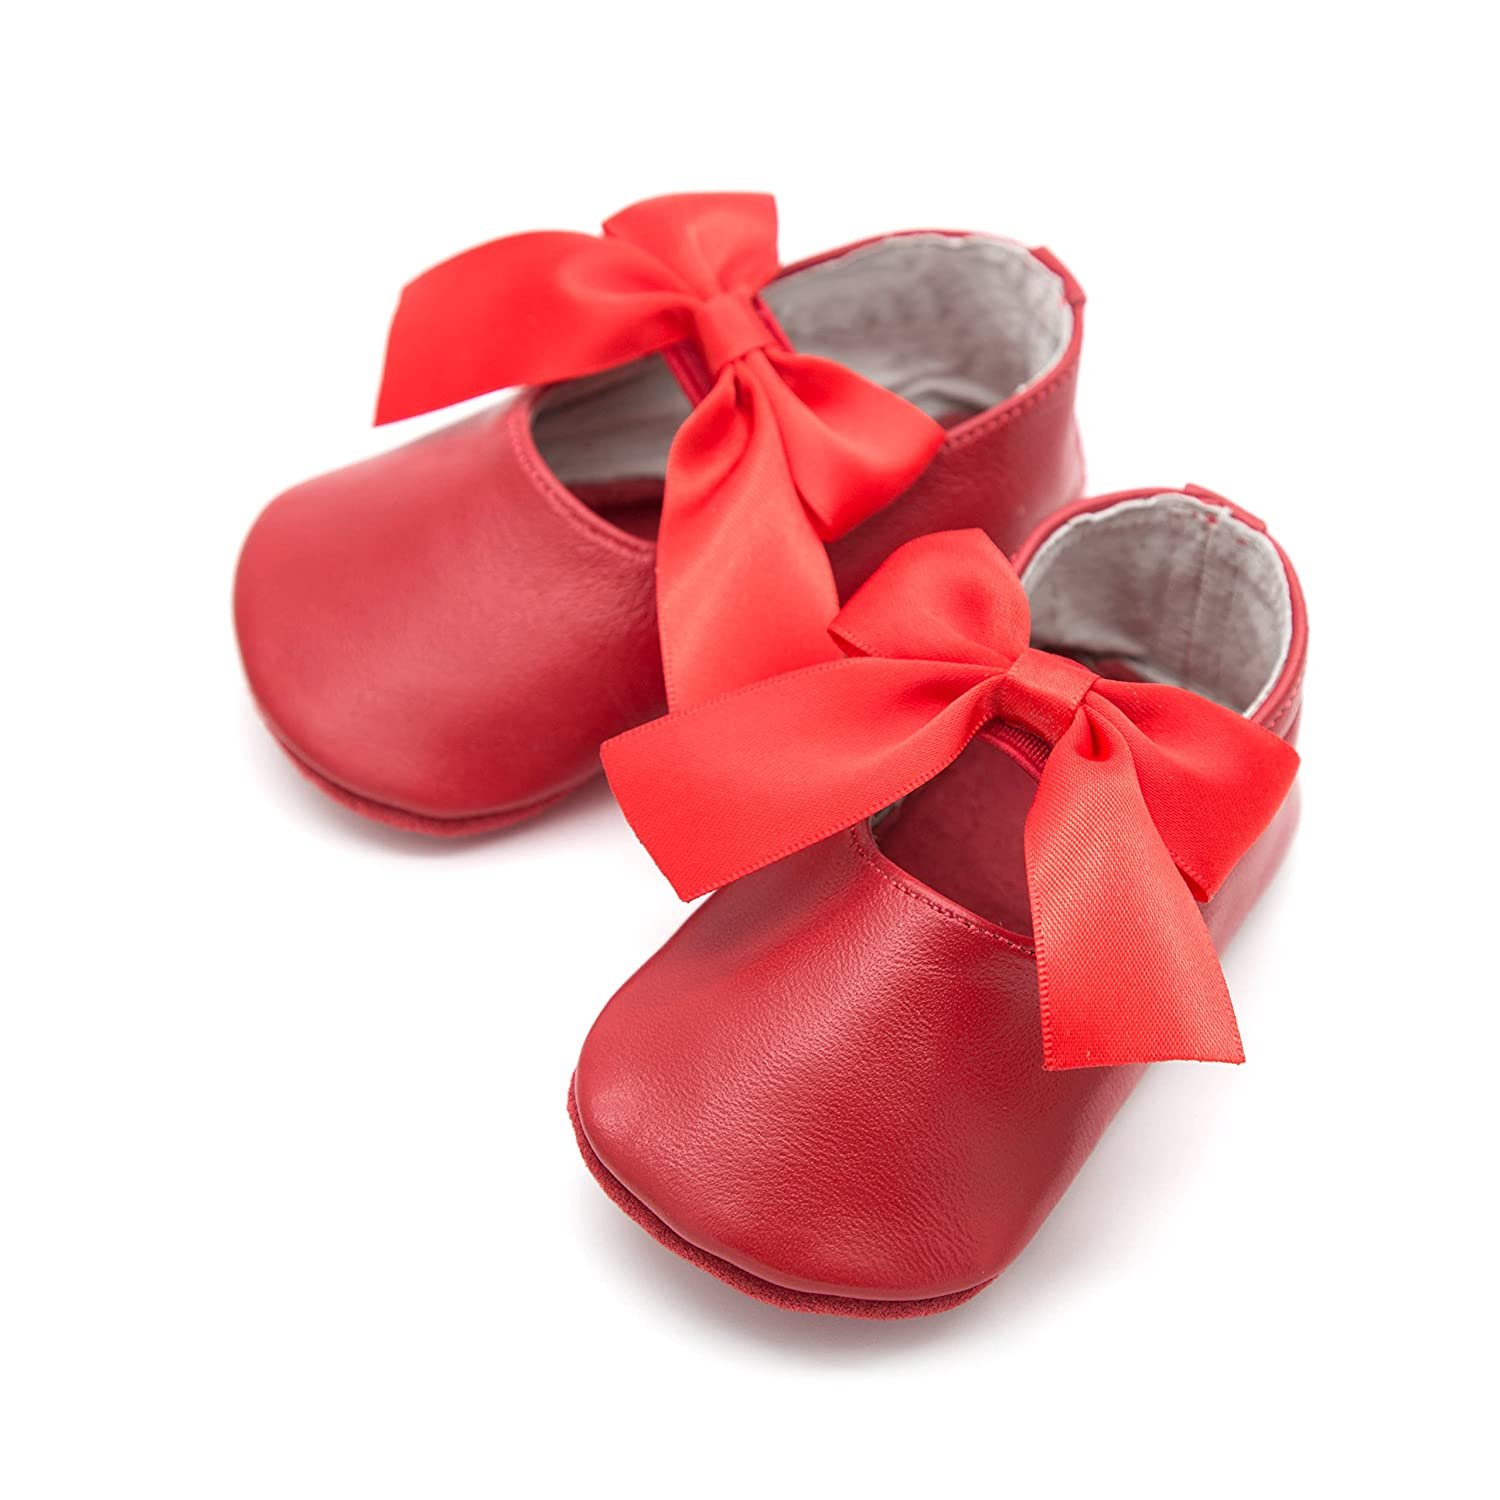 Elk Kids Baby Ballet Flats, Baby Shoes, Crib Shoes (Baby/Toddler)